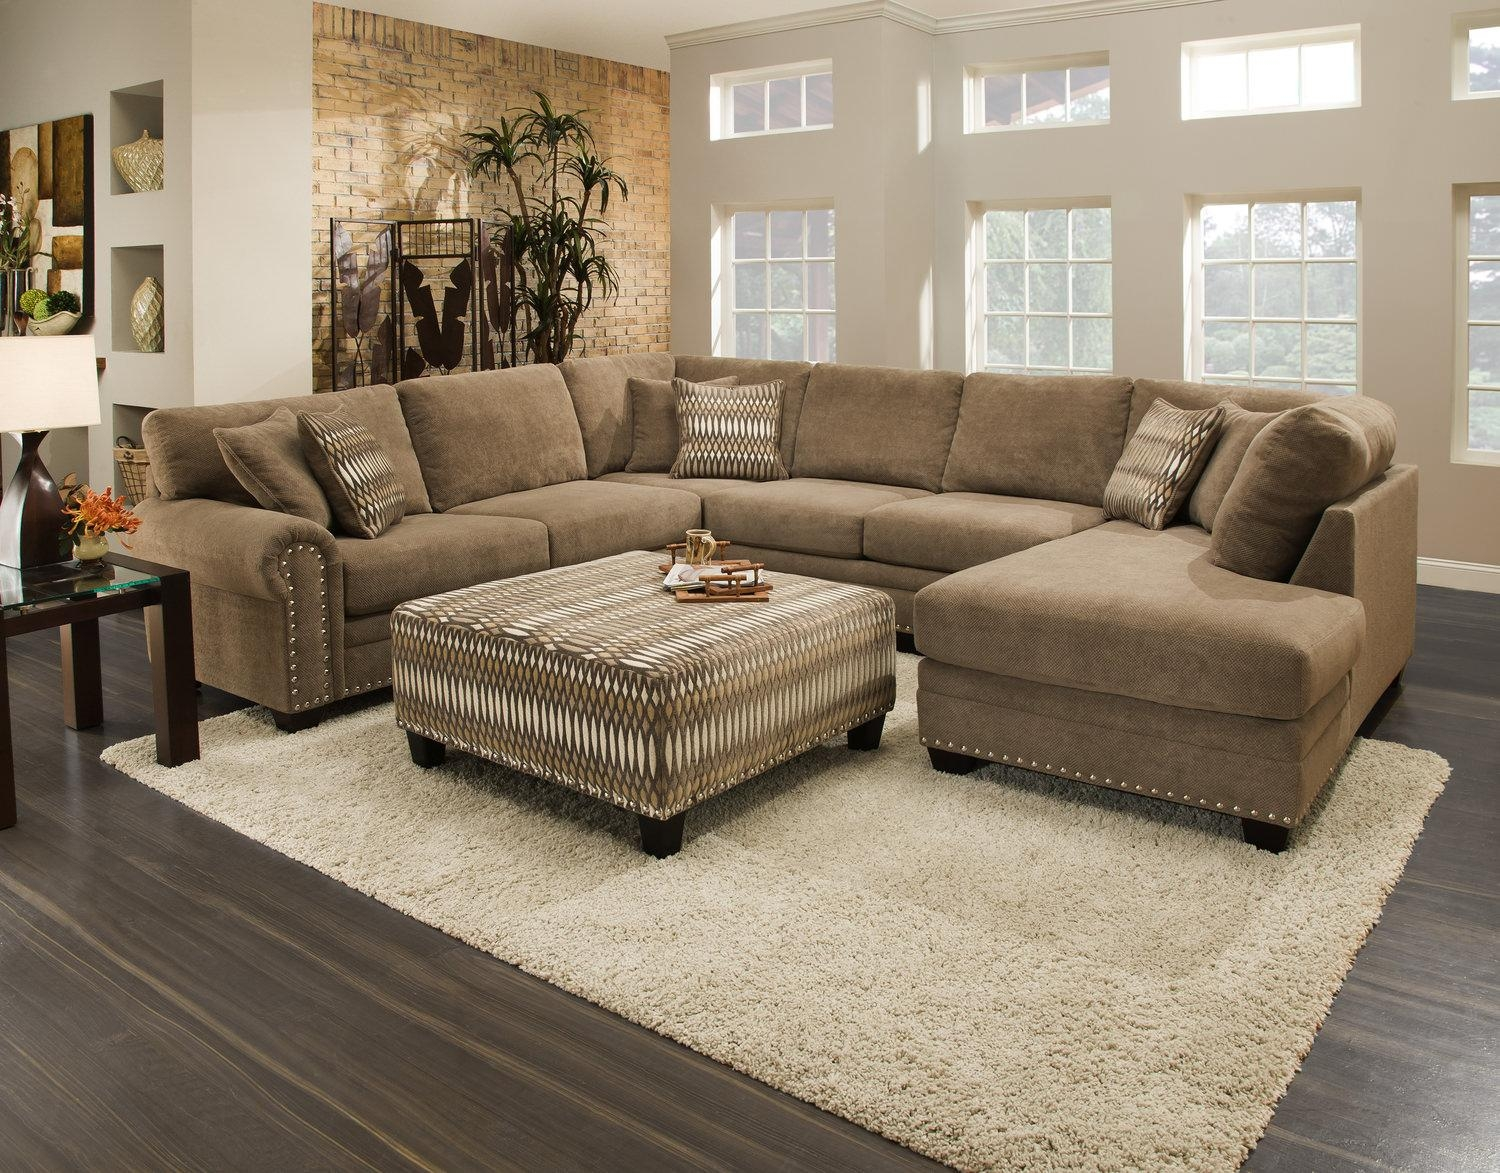 wide sofa sectionals home theater seating 20 photos seat sectional sofas ideas